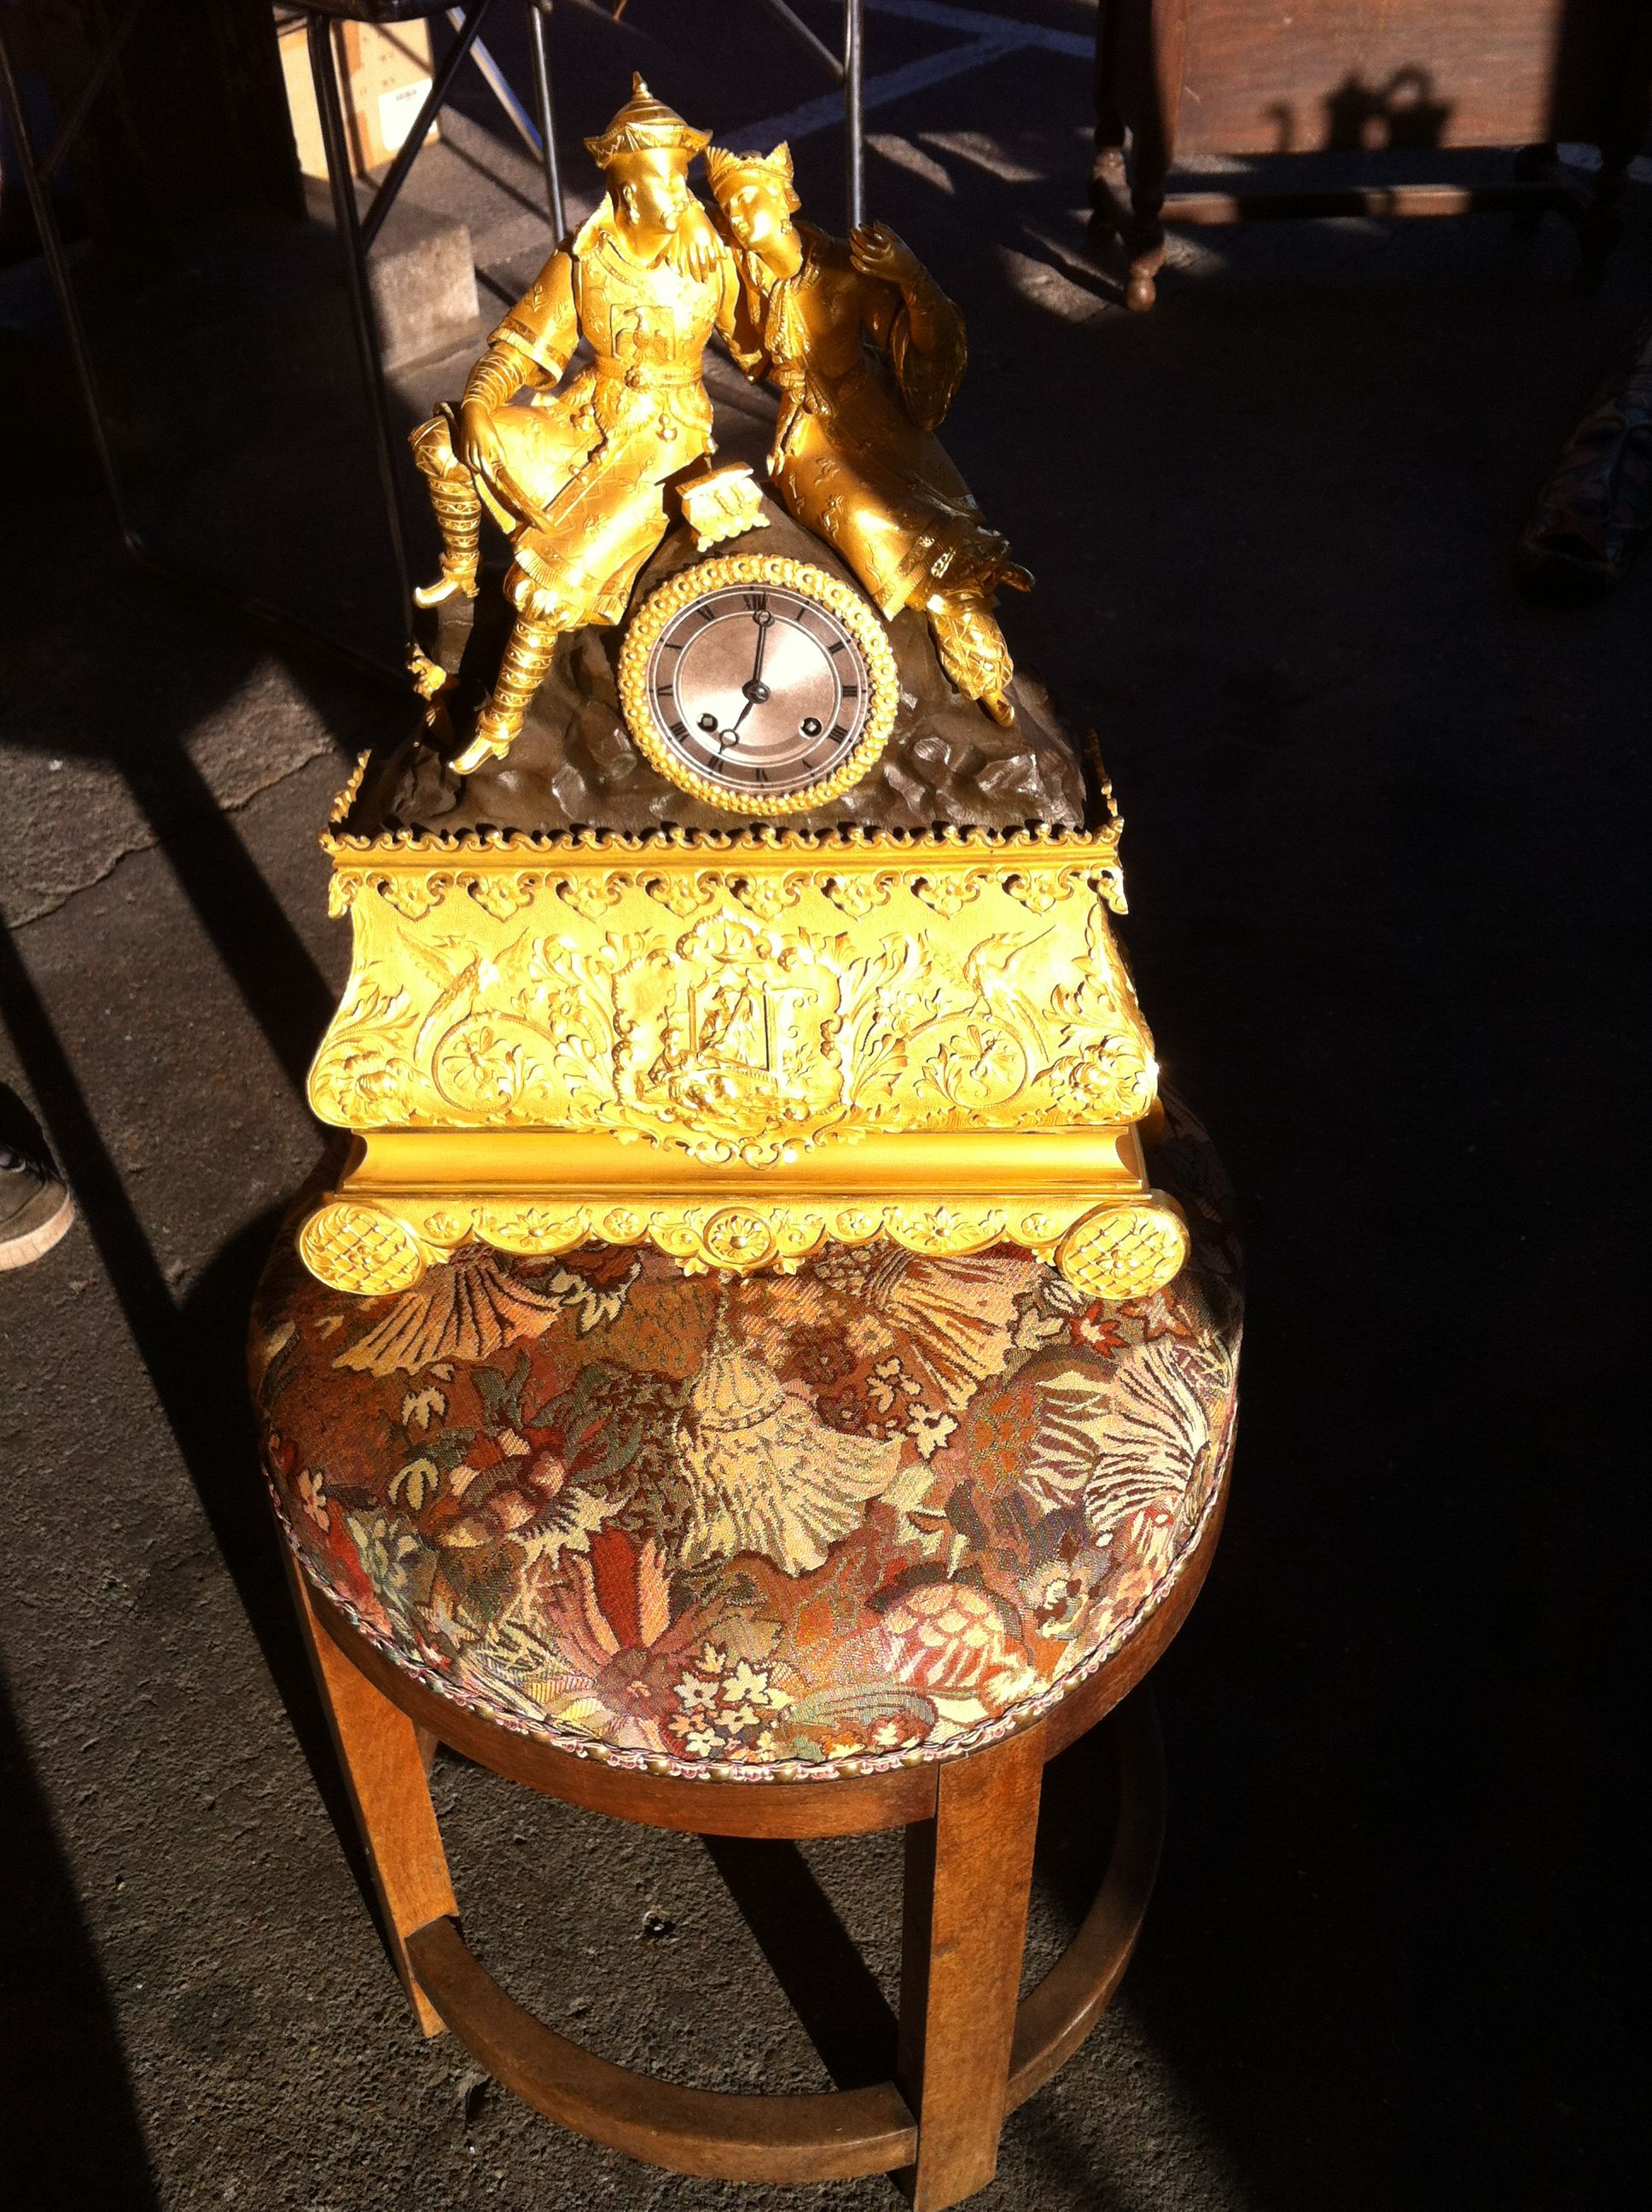 At a flea market in South West  France, the perfect clock for an interior I am currently working on . The dorure is perfect and the subjects too! 19th century french